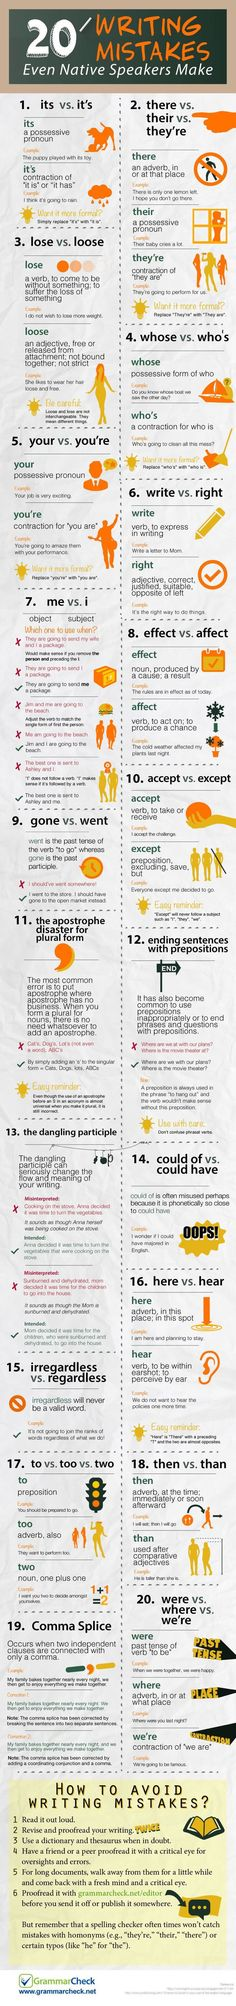 Educational infographic : Common writing mistakes and how to avoid them #infographic